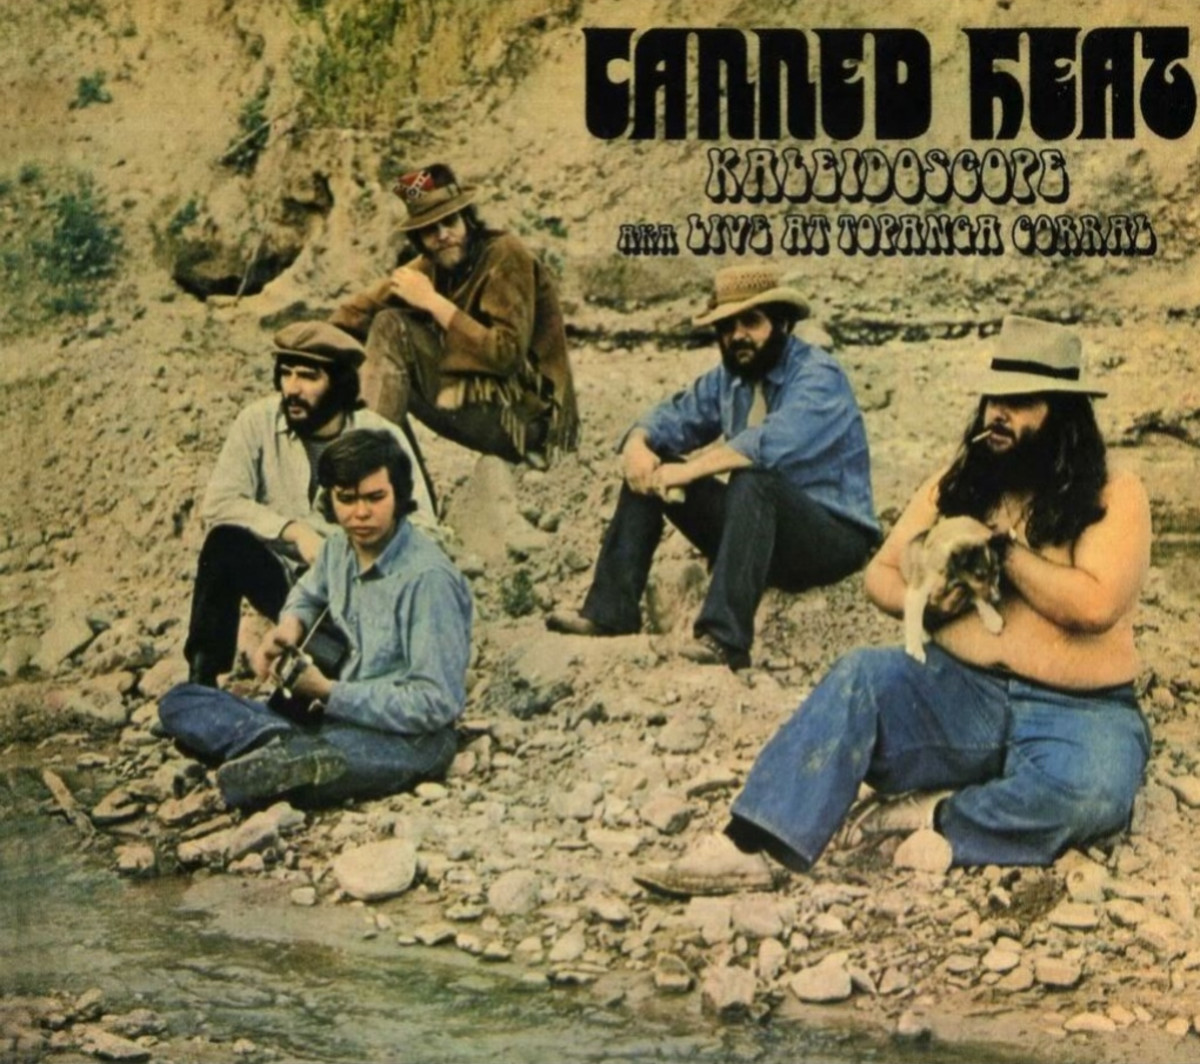 """Canned Heat """"Live at the Kaleidoscope AKA Live at Topanga Corral"""" Lilith Records LR137 12"""" LP Vinyl Record (1968) UK Pressing"""